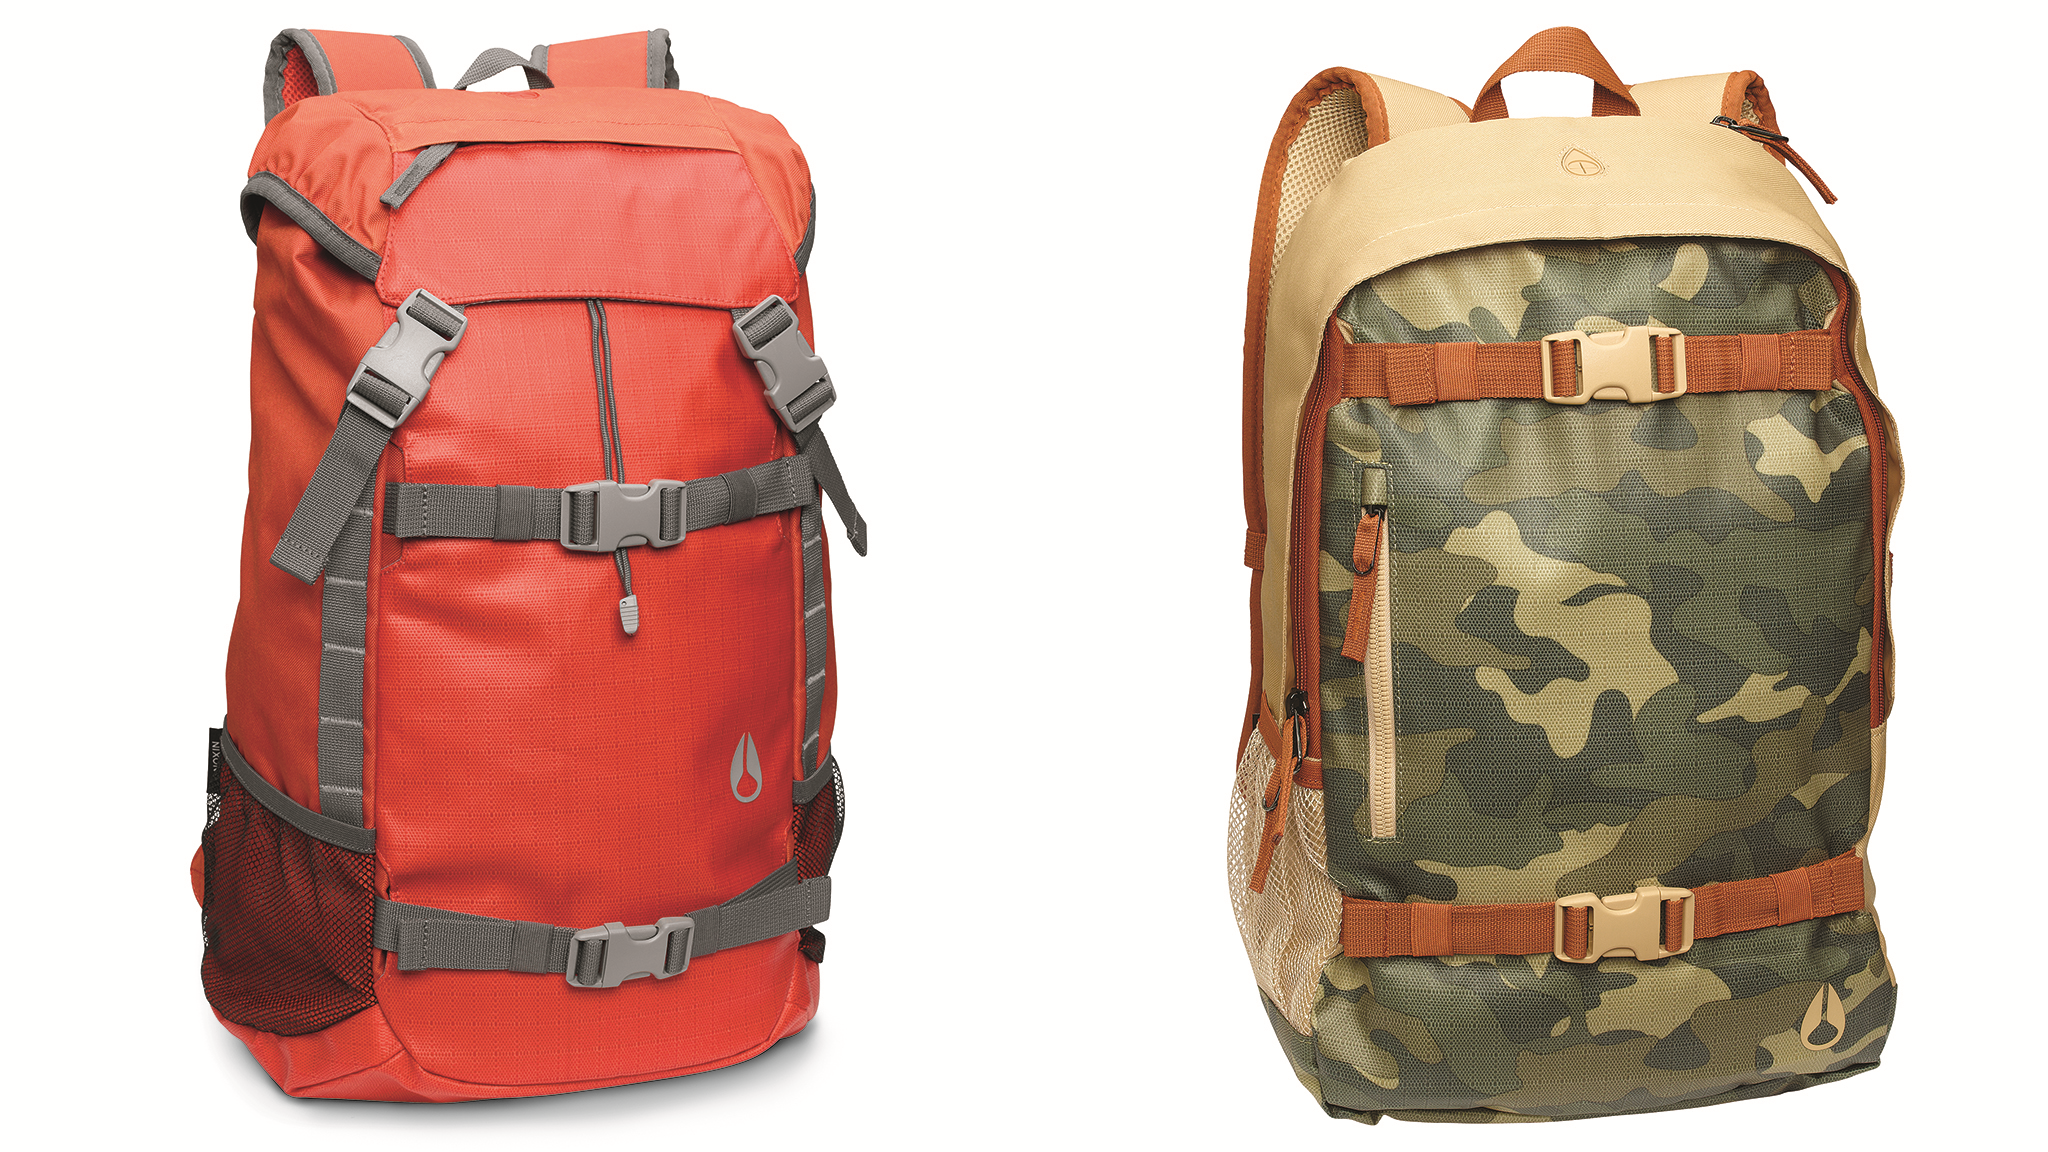 Nixon backpacks